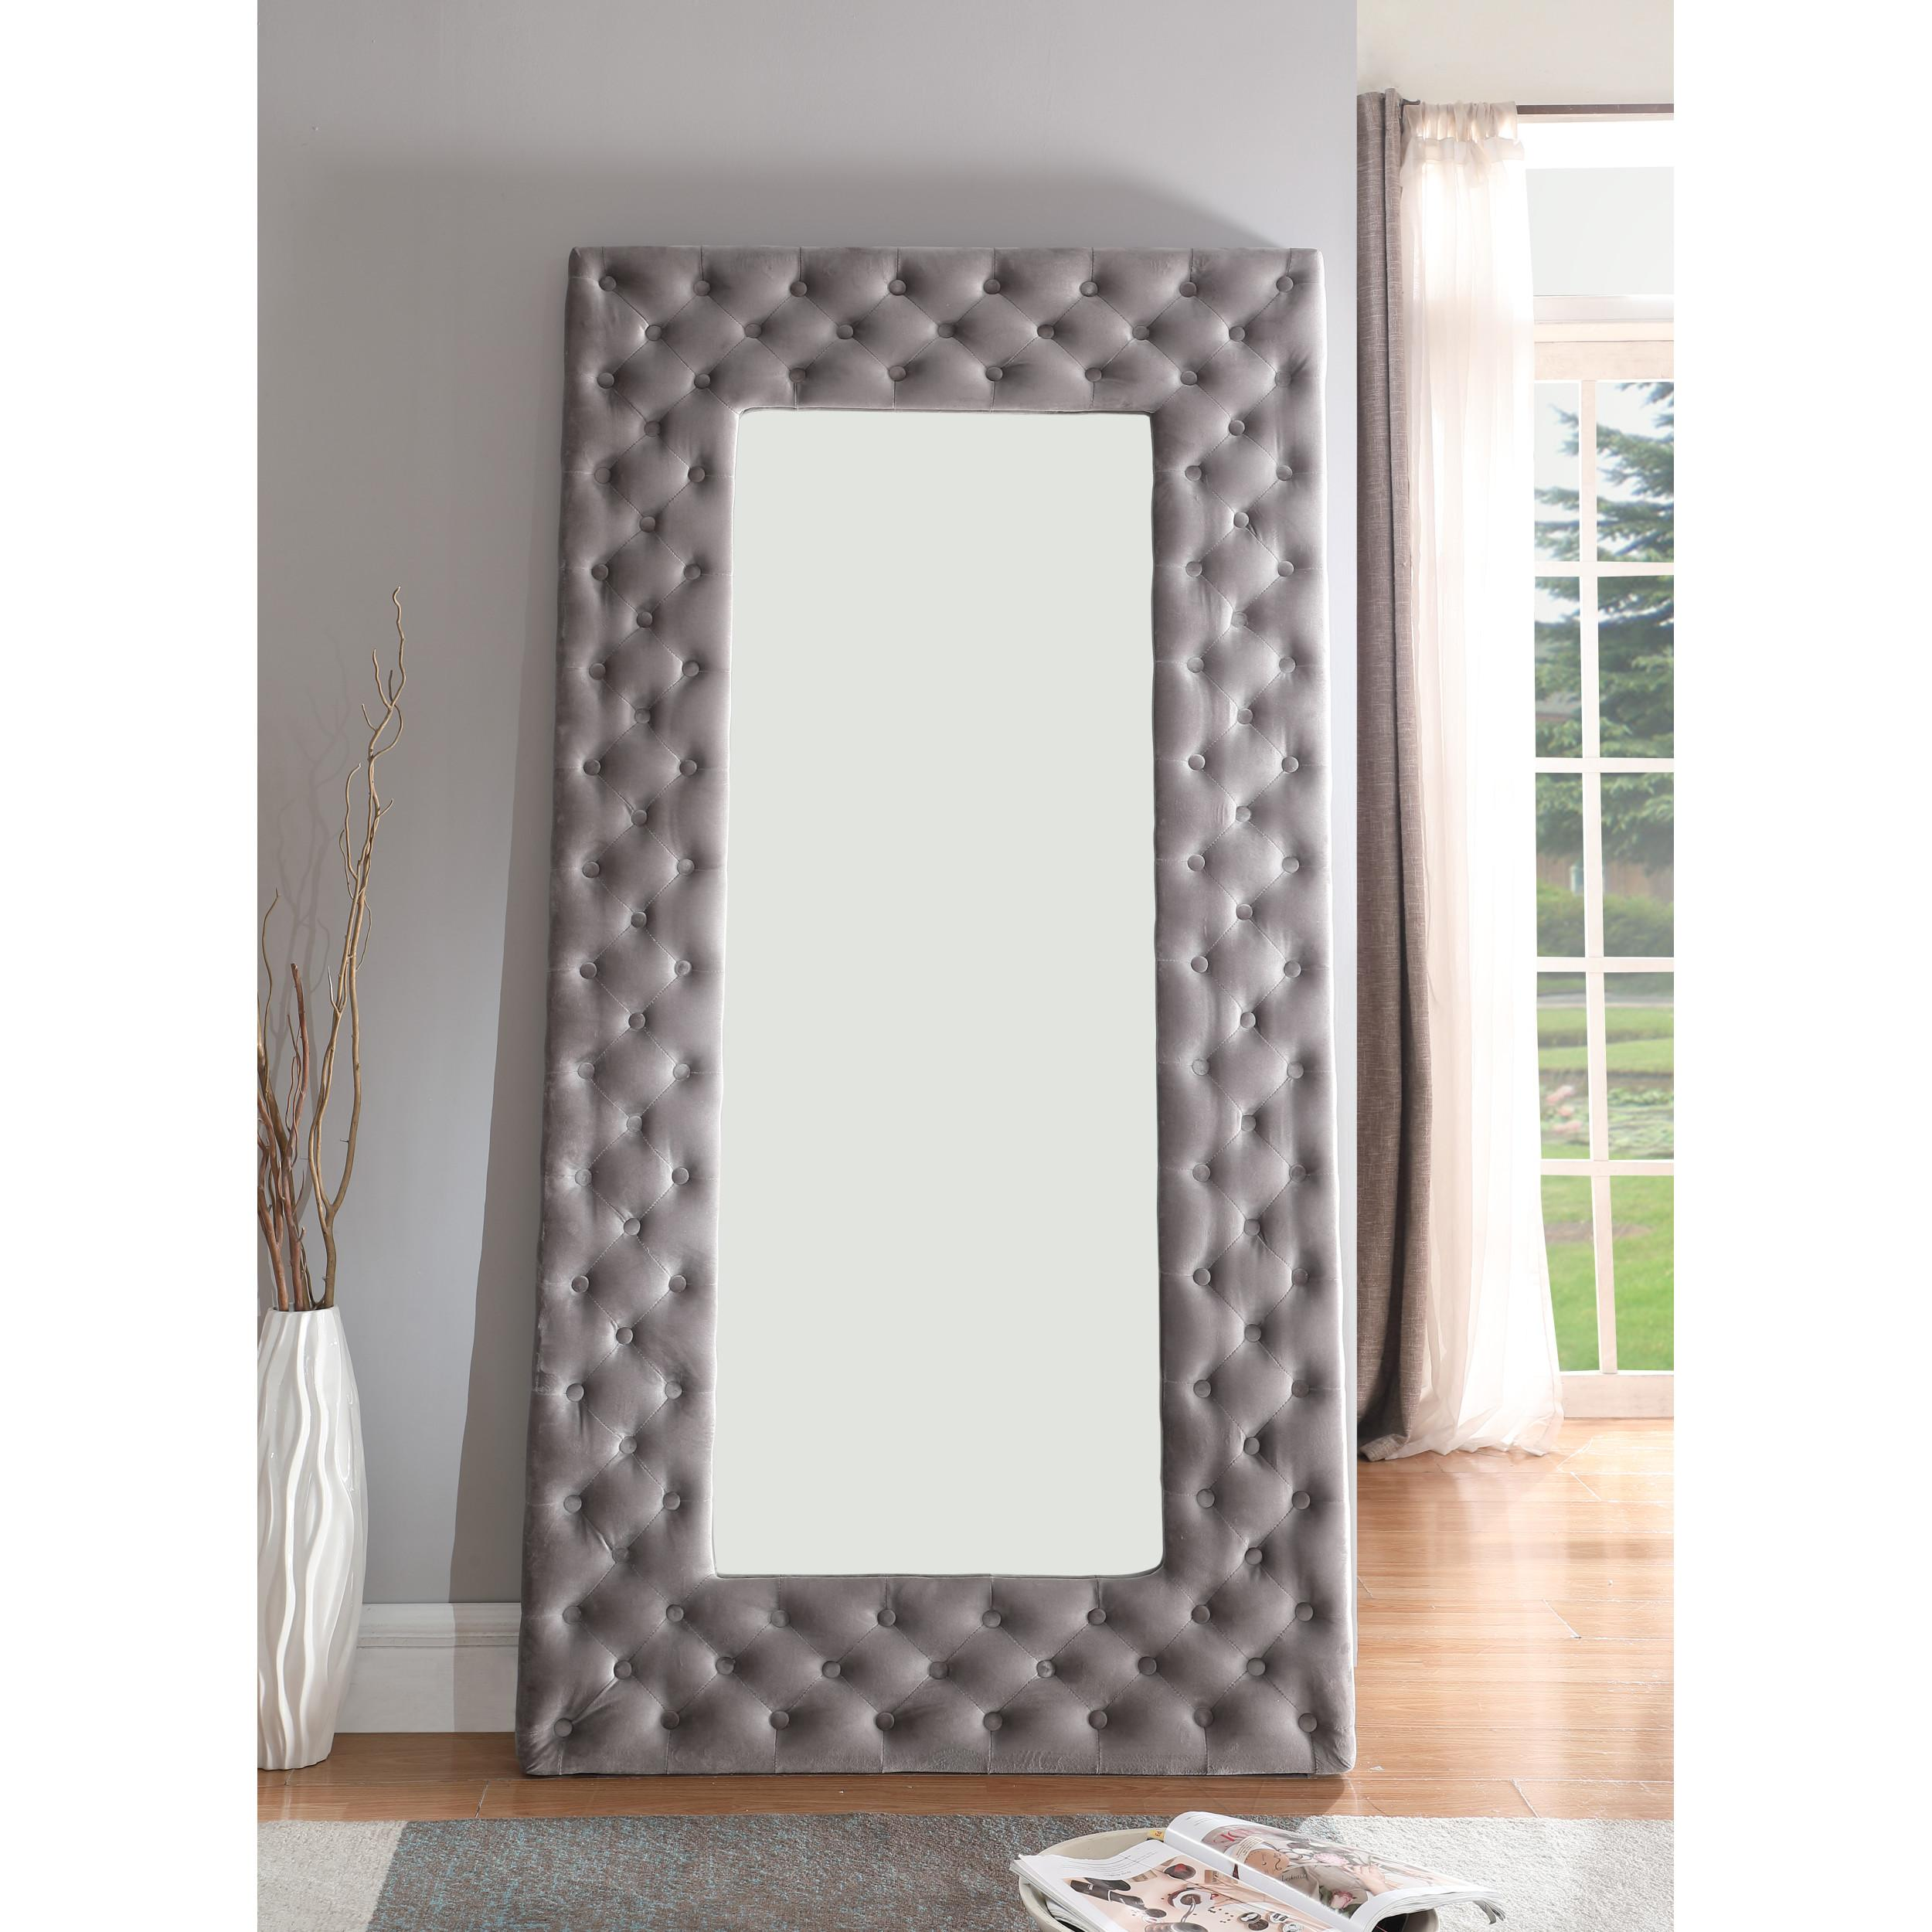 Emerald Home Lacey Silver Gray Fabric Tufted Floor Mirror